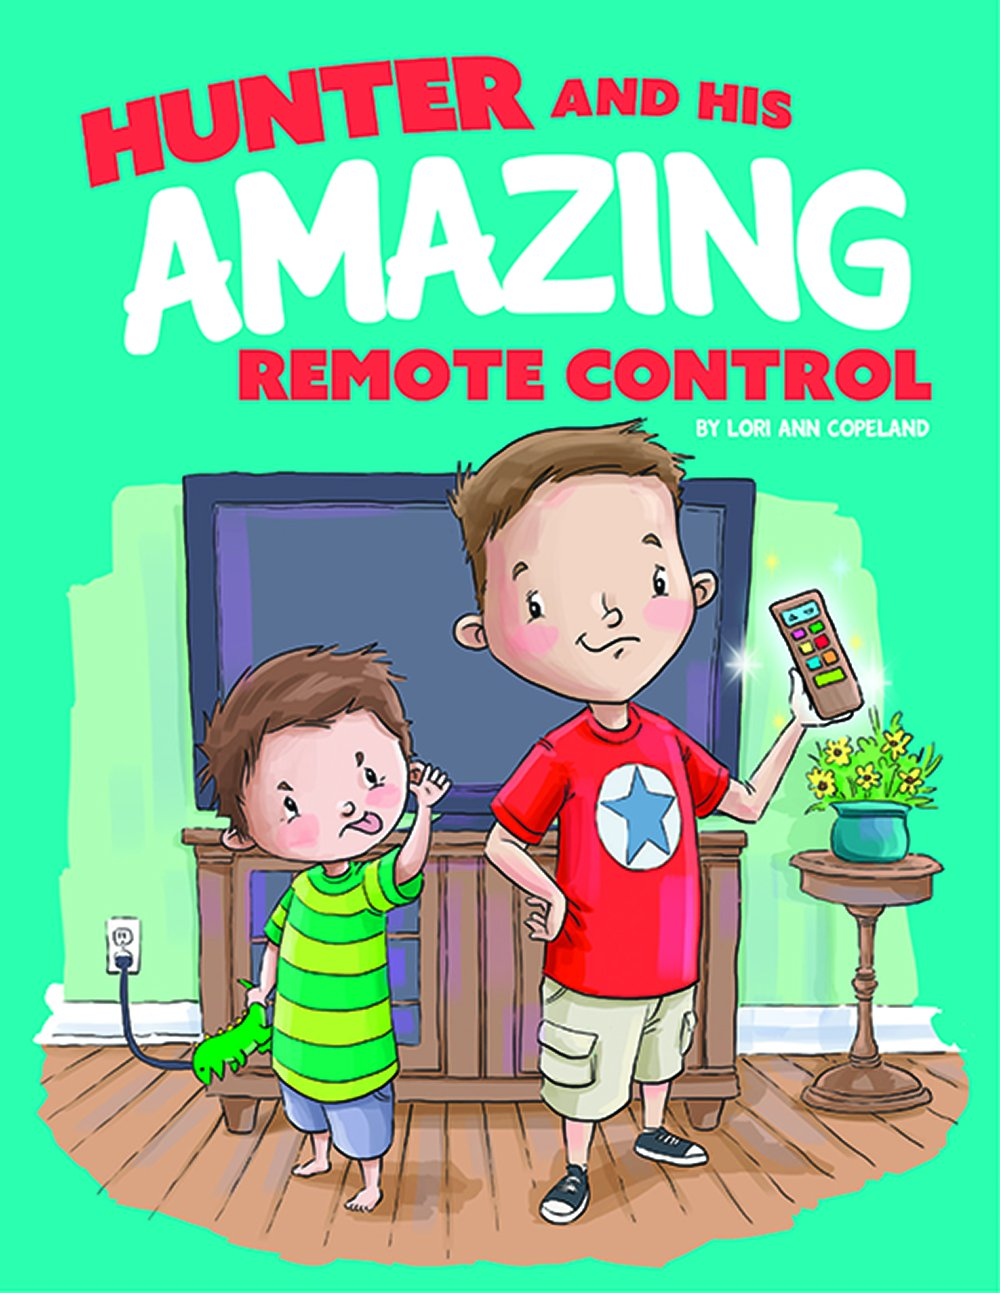 Hunter and his Amazing Remote Control by Lori Ann Copeland